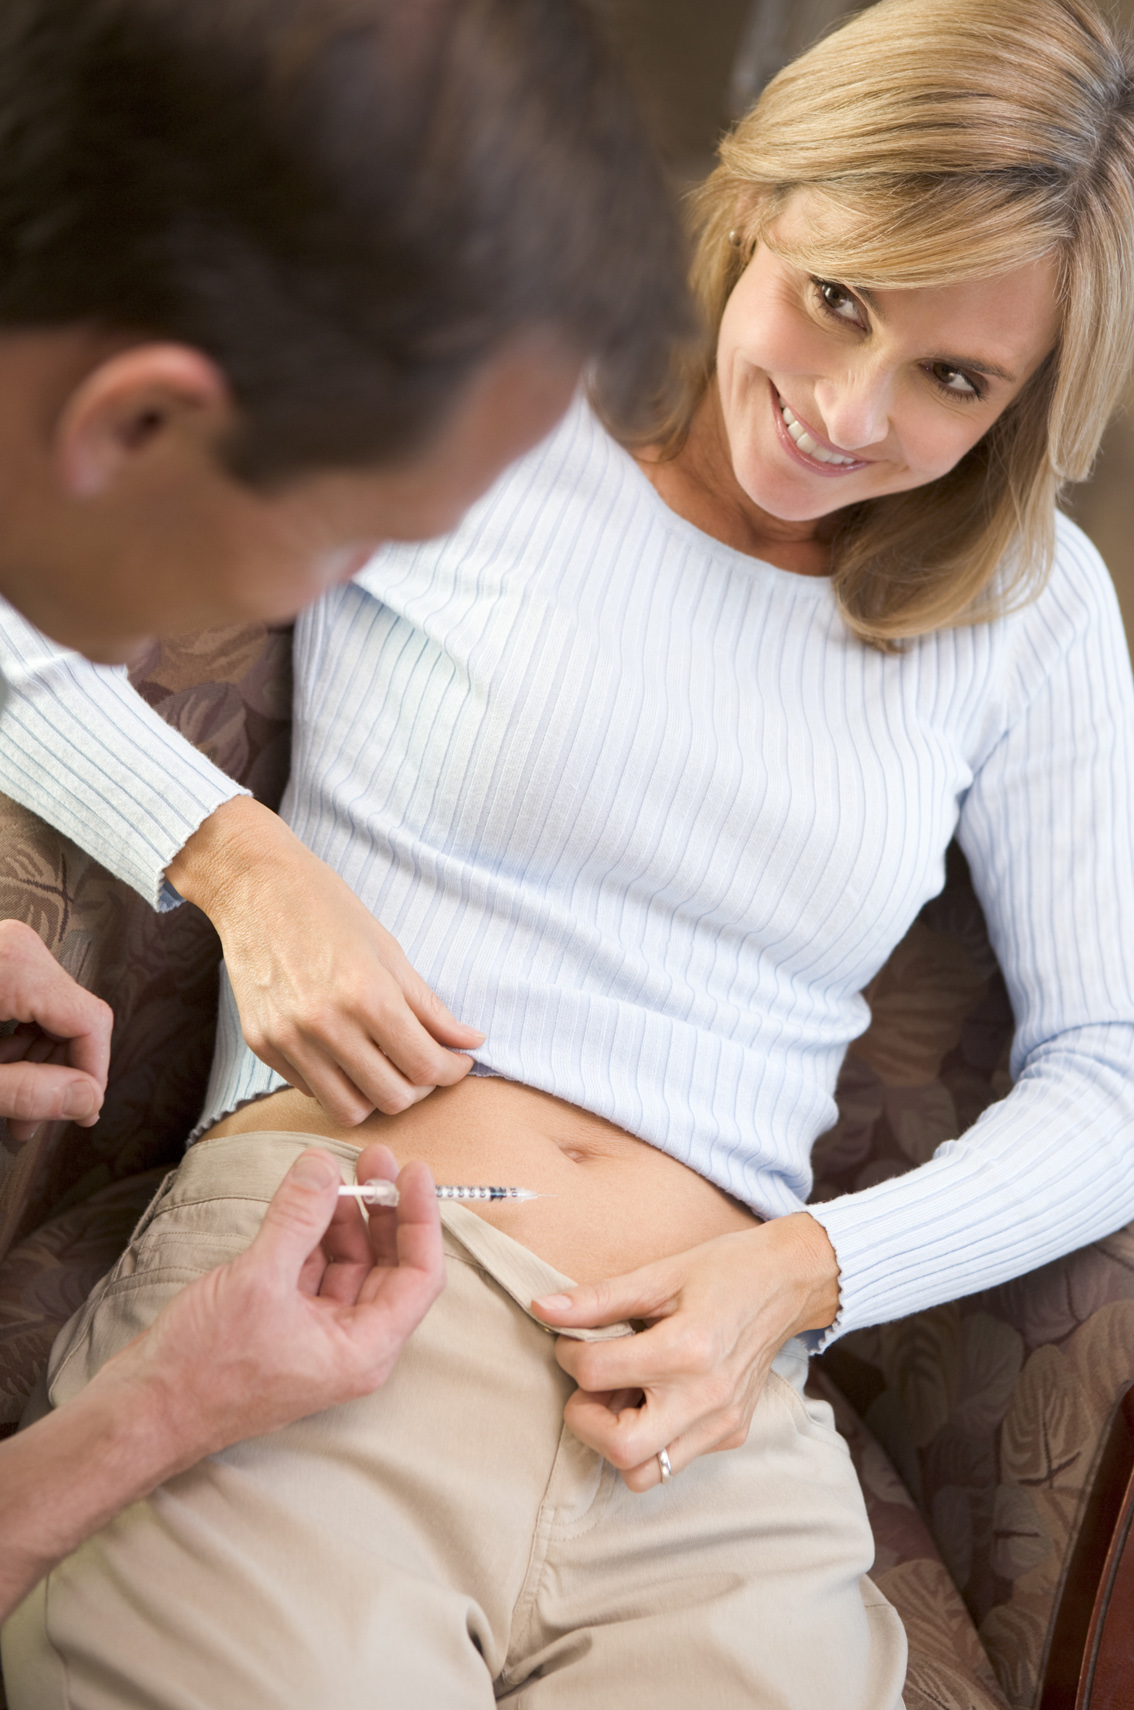 How to Increase the Success Rate of IVF